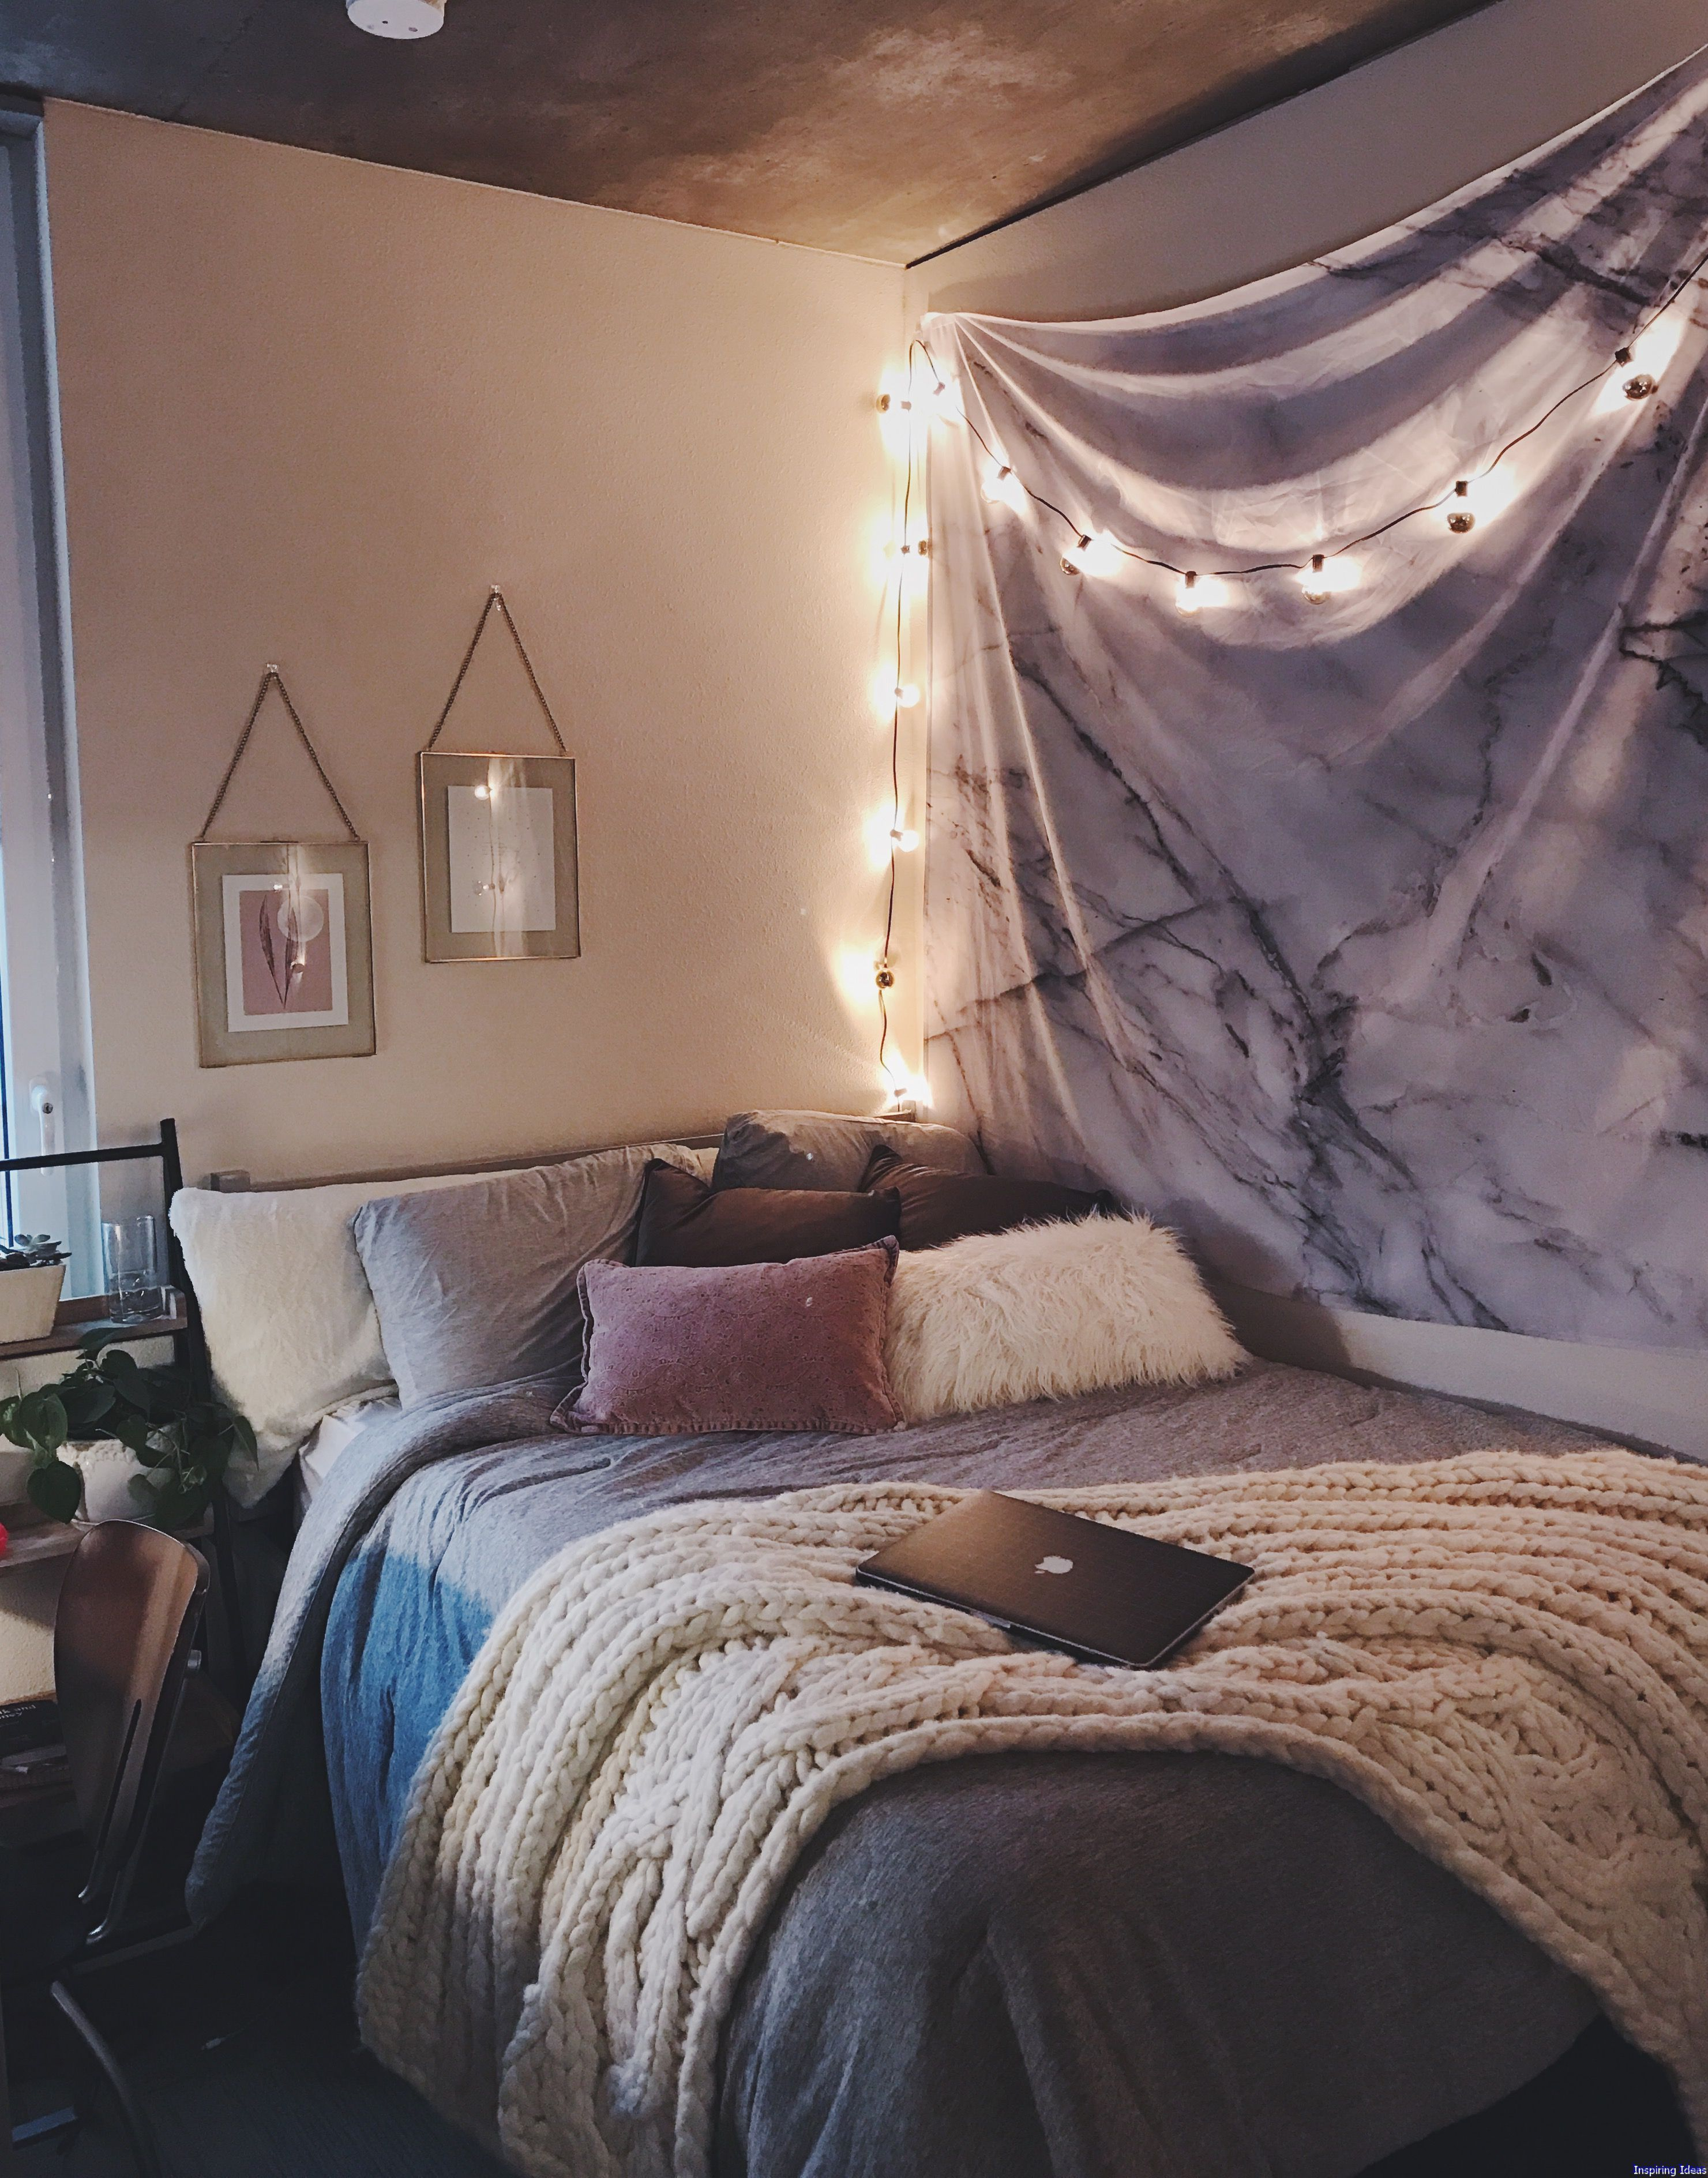 85 Super Cozy Bedroom Ideas To Inspire You Minimalist Home Decor